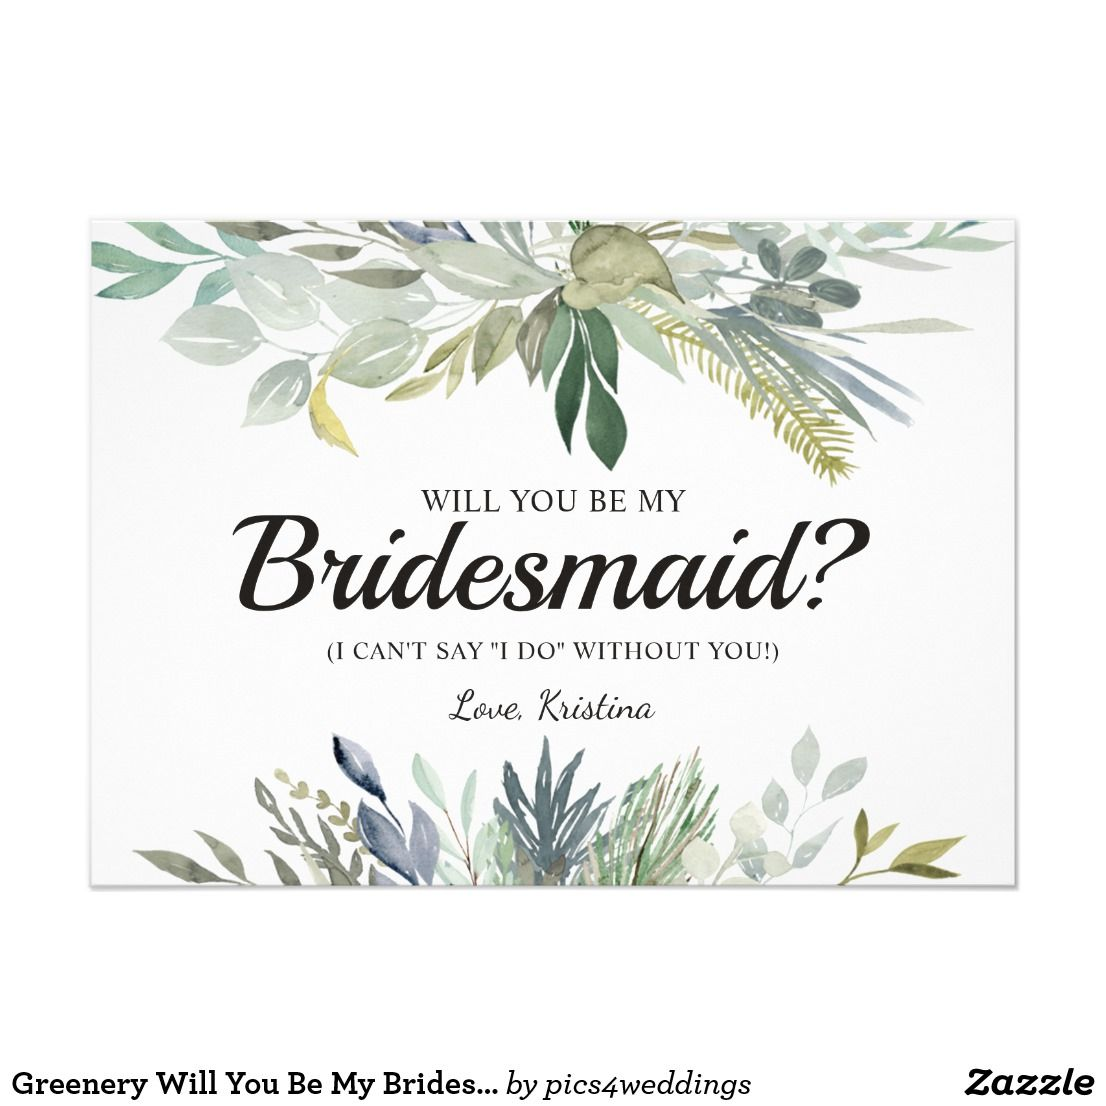 Greenery will you be my bridesmaid cards be